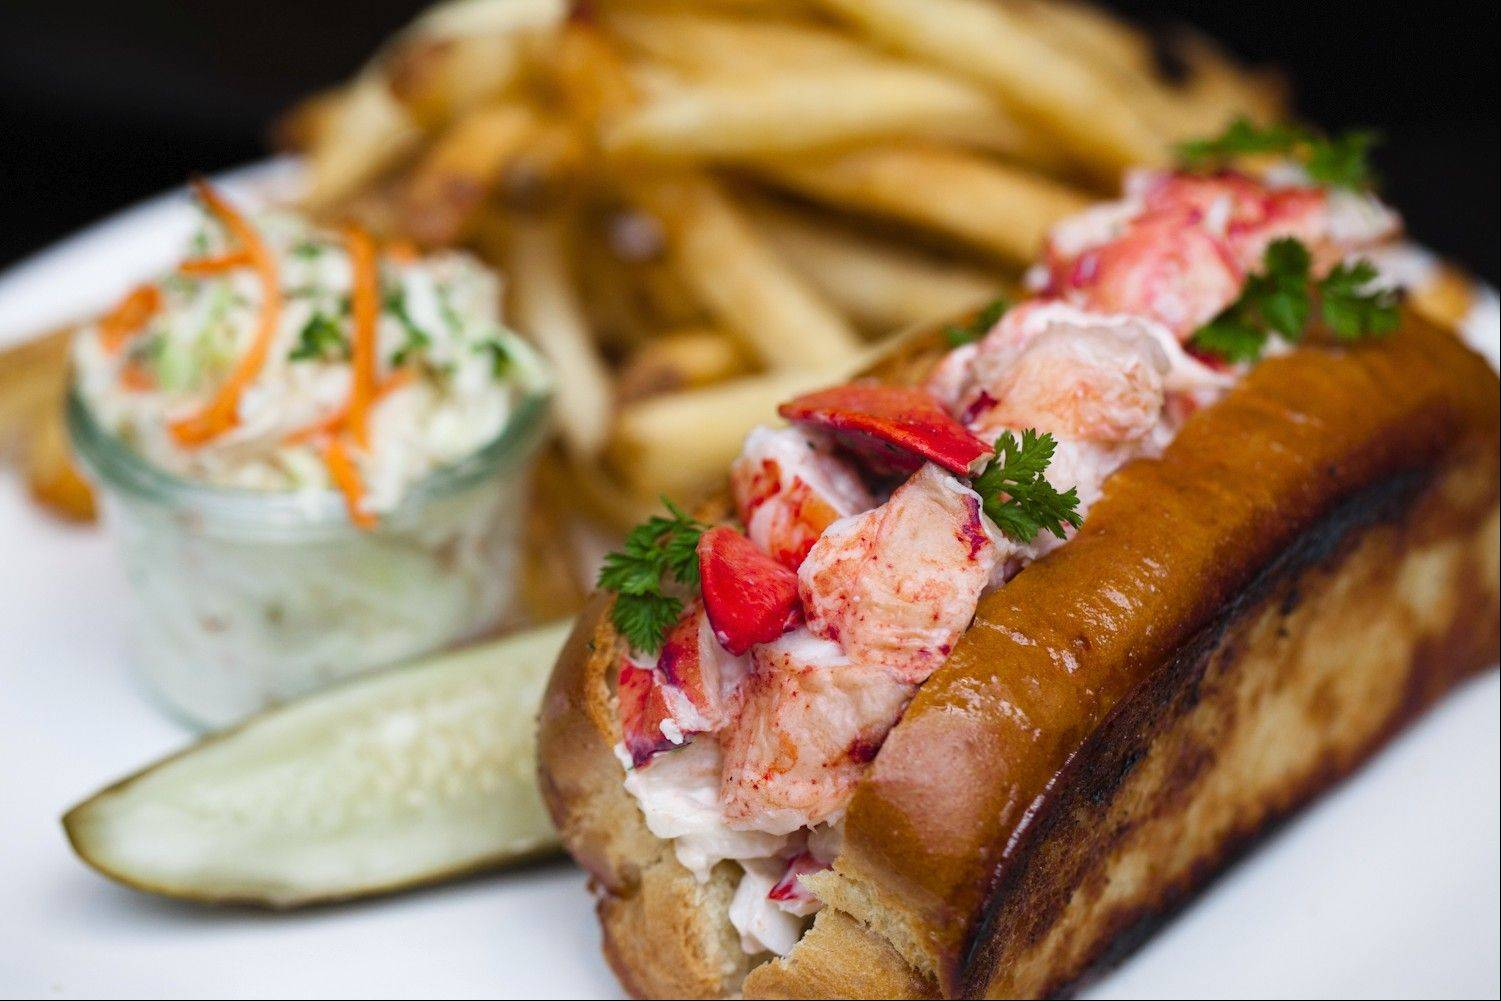 A lobster roll is one of the selections on the two-course Chicago Restaurant Week lunch menu for Shaw's Crab House in Schaumburg and Chicago.